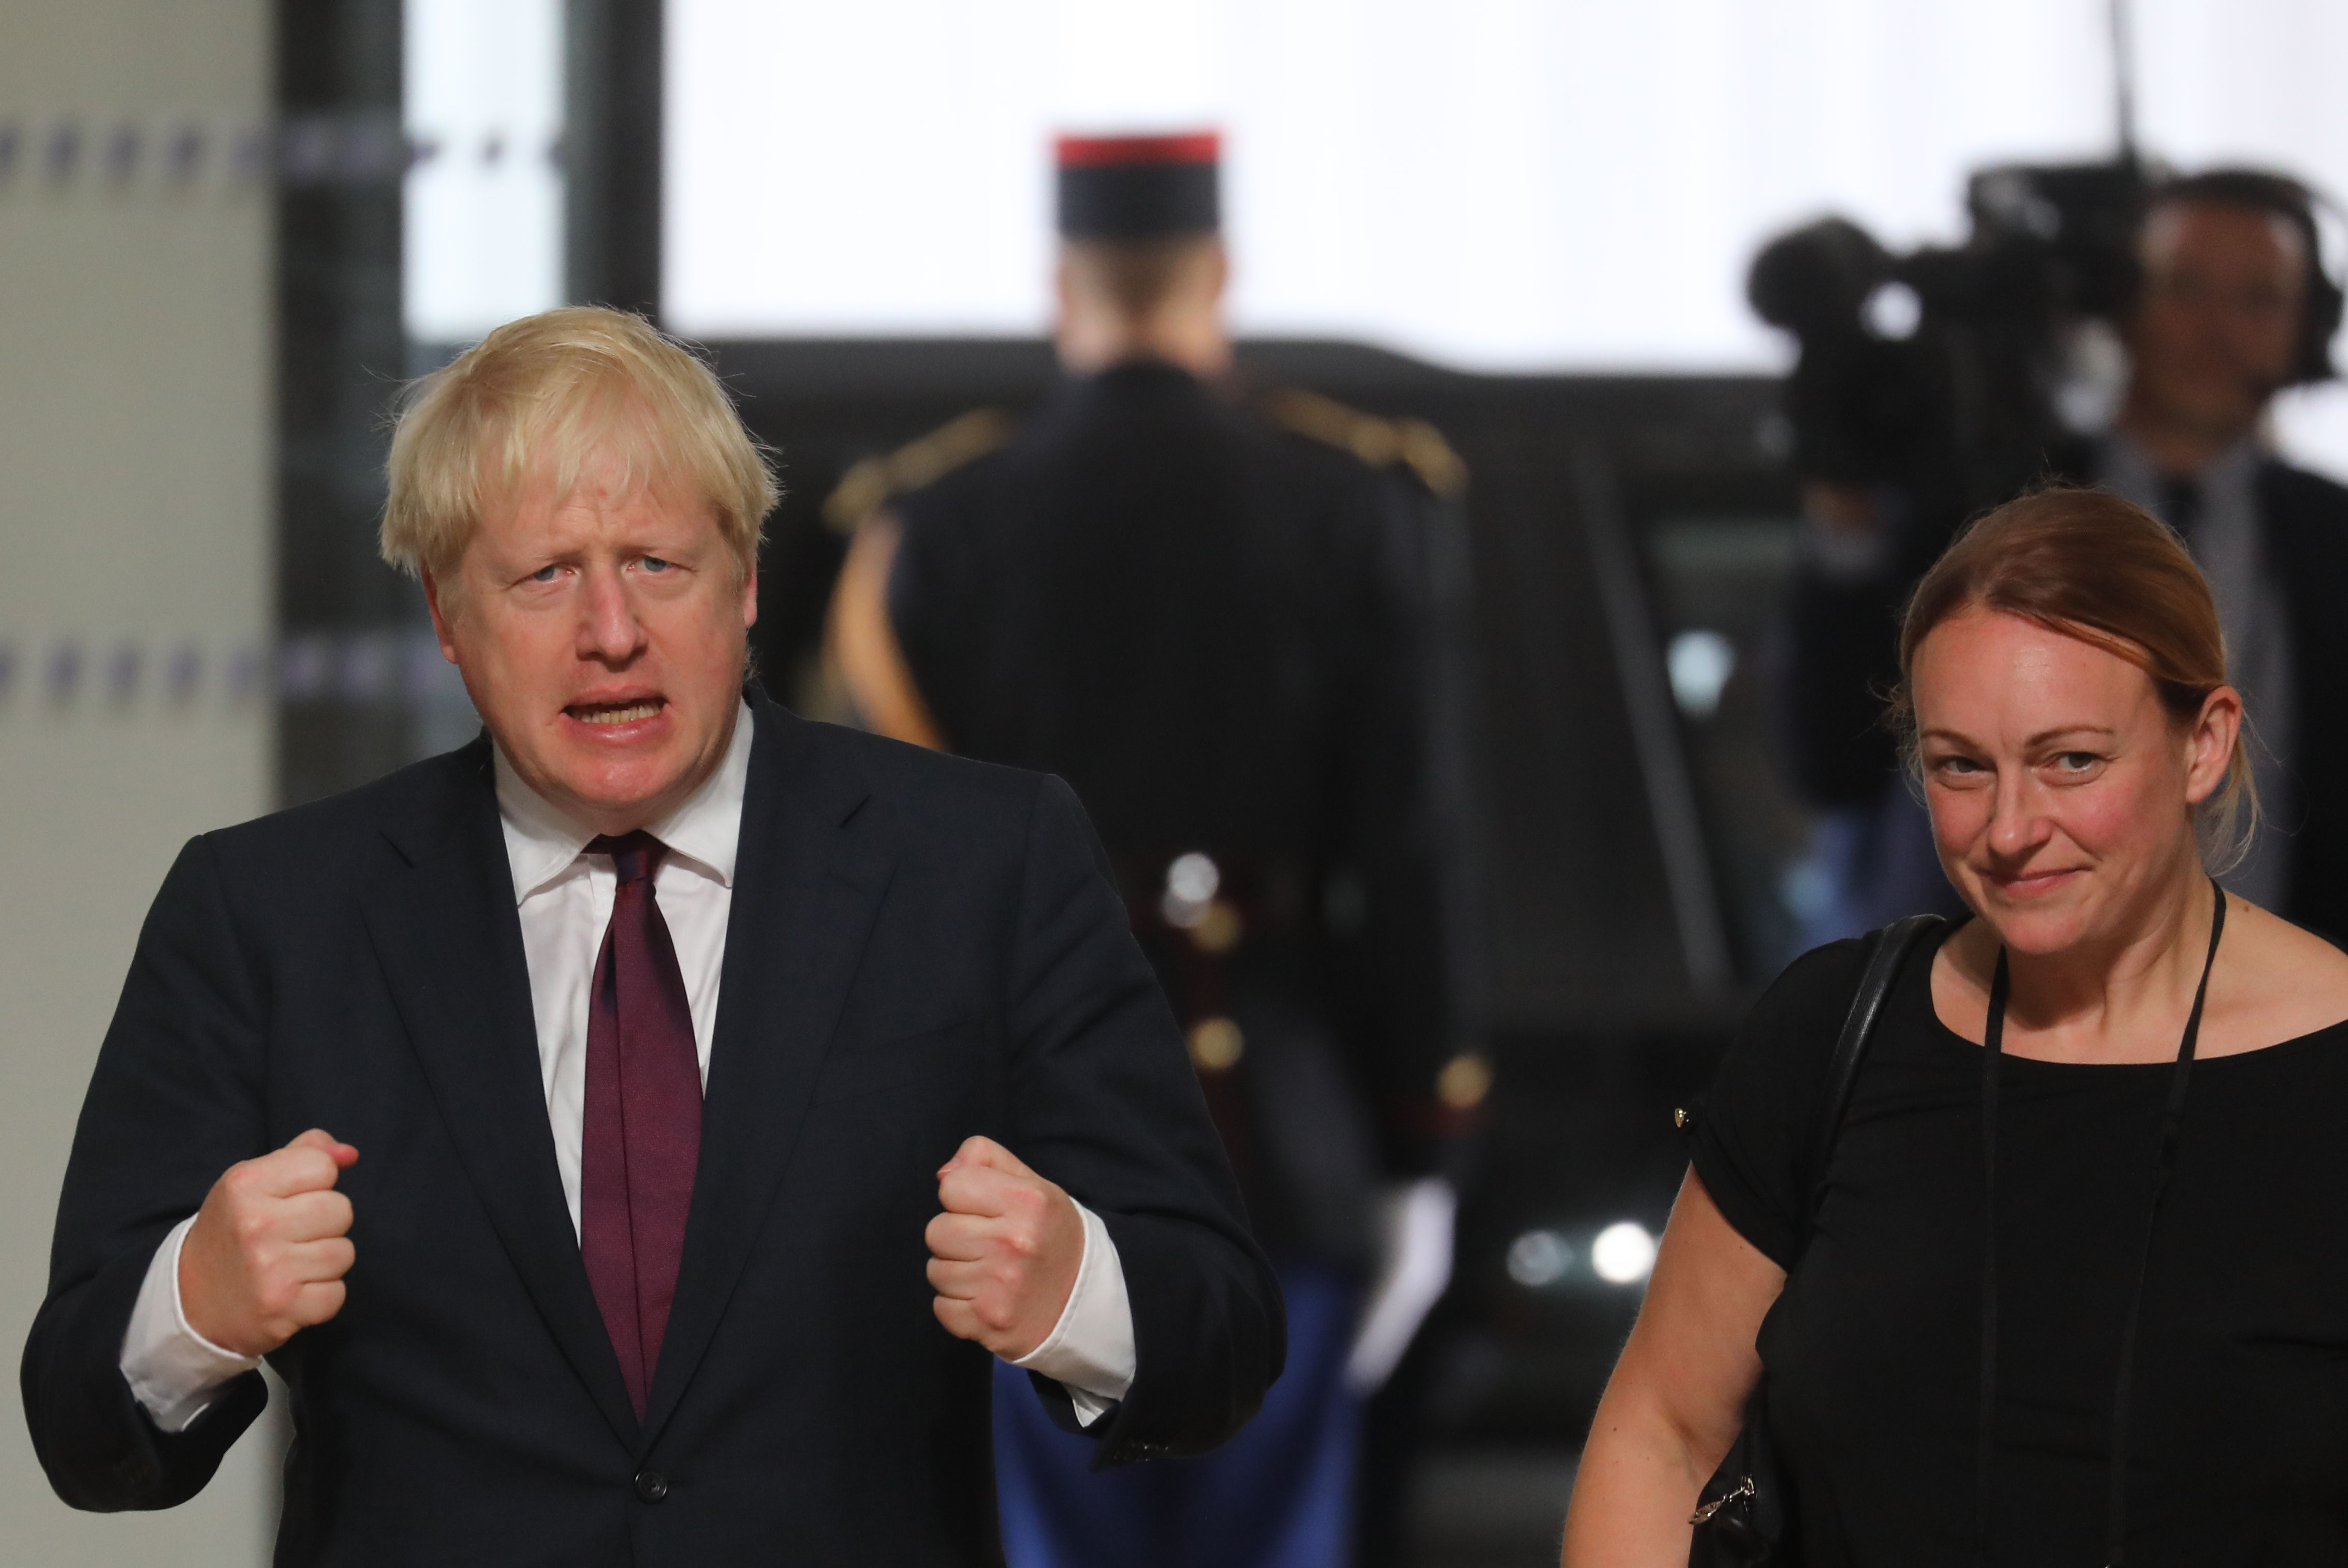 British Prime Minister Boris Johnson arrives with Foreign Office Head of Operations Shelley Williams-Walker at the Bellevue Palace in Biarritz, south-west France for lunch on August 25, 2019, on the second day of the annual G7 Summit attended by the leaders of the world's seven richest democracies, Britain, Canada, France, Germany, Italy, Japan and the United States. (Photo by Ludovic MARIN / POOL / AFP)        (Photo credit should read LUDOVIC MARIN/AFP/Getty Images)